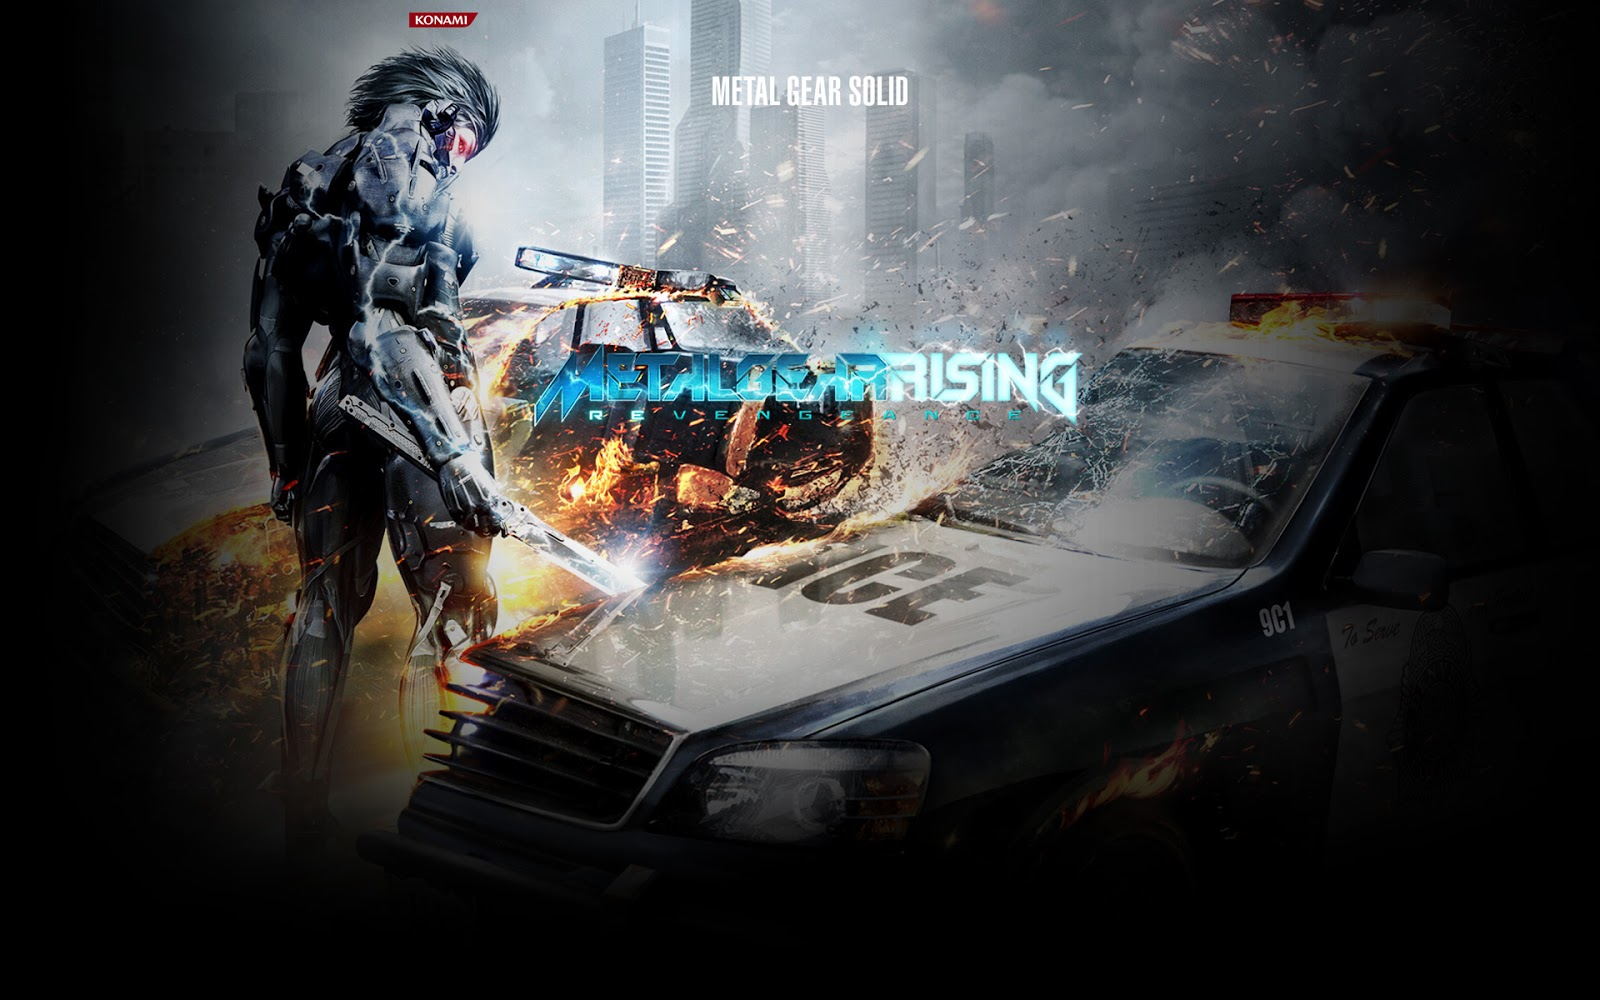 http://4.bp.blogspot.com/-MzDGkpnBSeo/URbmWK1j4TI/AAAAAAAAKlA/2RQAs0Tzt1I/s1600/metal_gear_rising_revengeance_2-wide-how-to-wallpaper.jpg